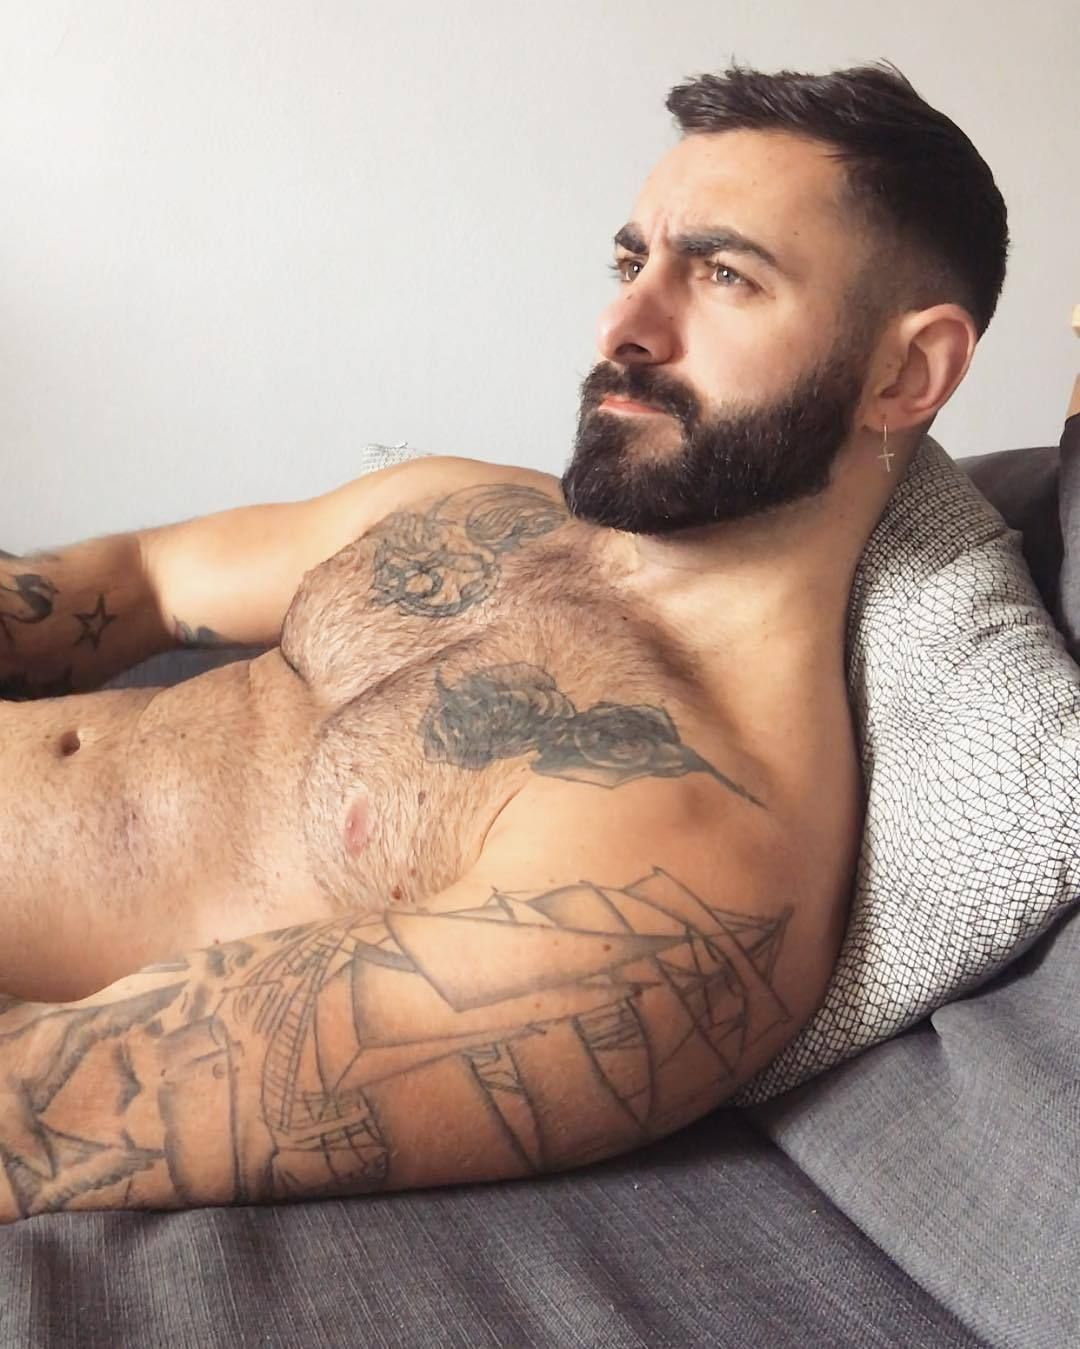 STUMP'S BLOKES – My personal choice of hot guys - beards, tattoos, muscle,  and lots of rugby players. No full nudity, but it may get a little close  every ...